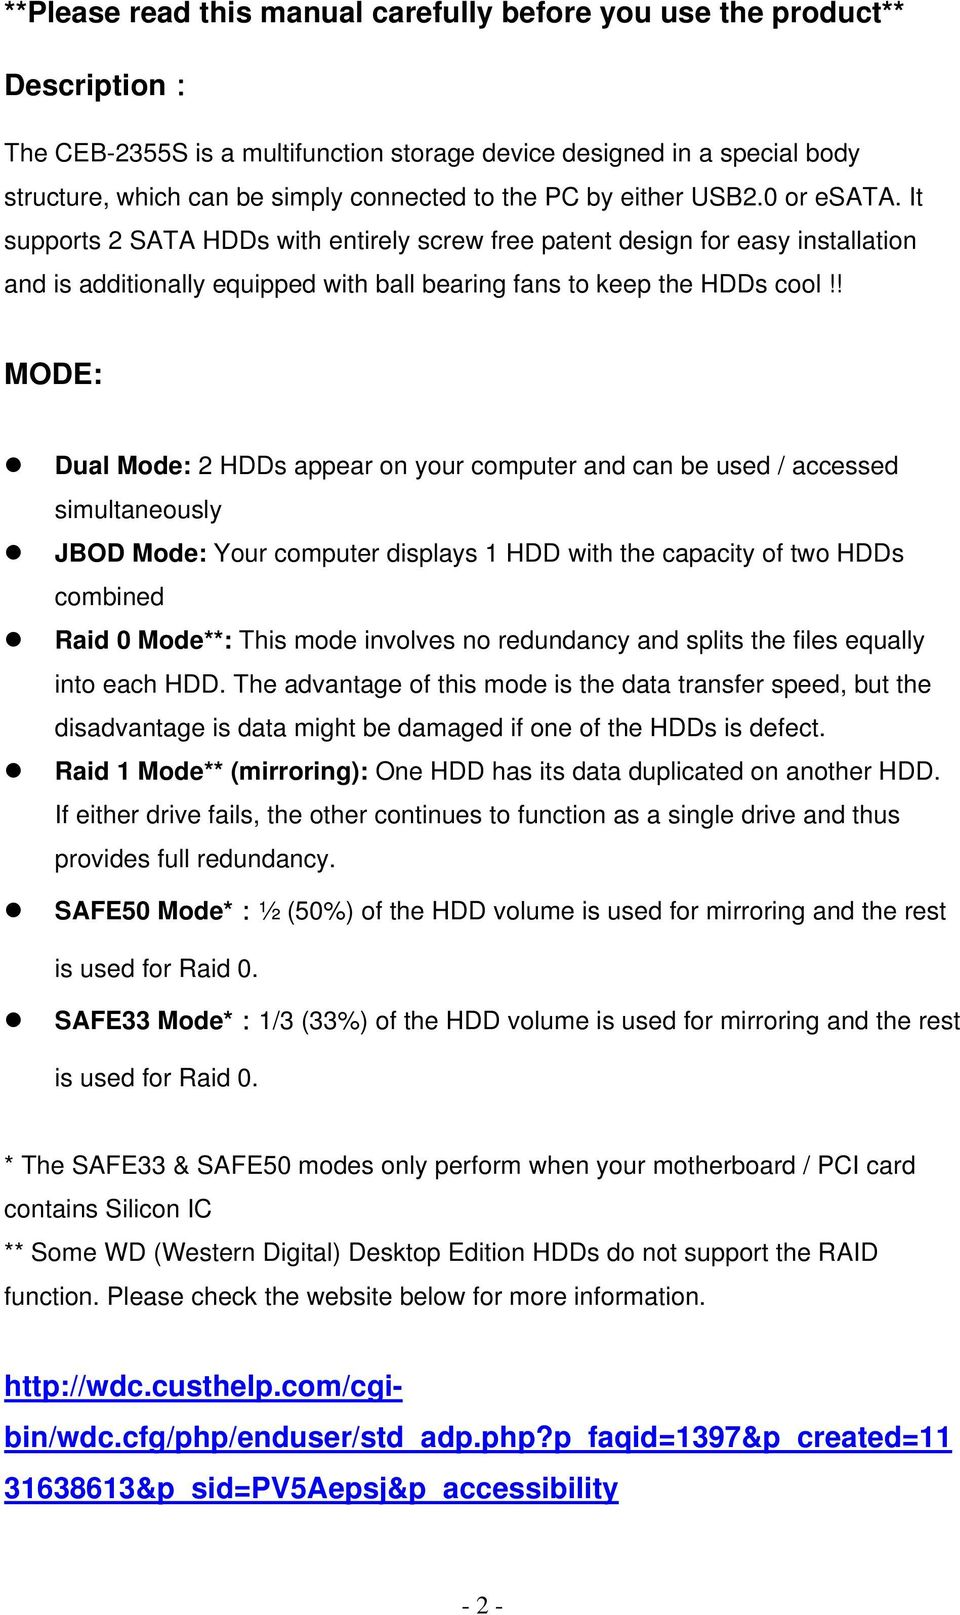 ! MODE: Dual Mode: 2 HDDs appear on your computer and can be used / accessed simultaneously JBOD Mode: Your computer displays 1 HDD with the capacity of two HDDs combined Raid 0 Mode**: This mode